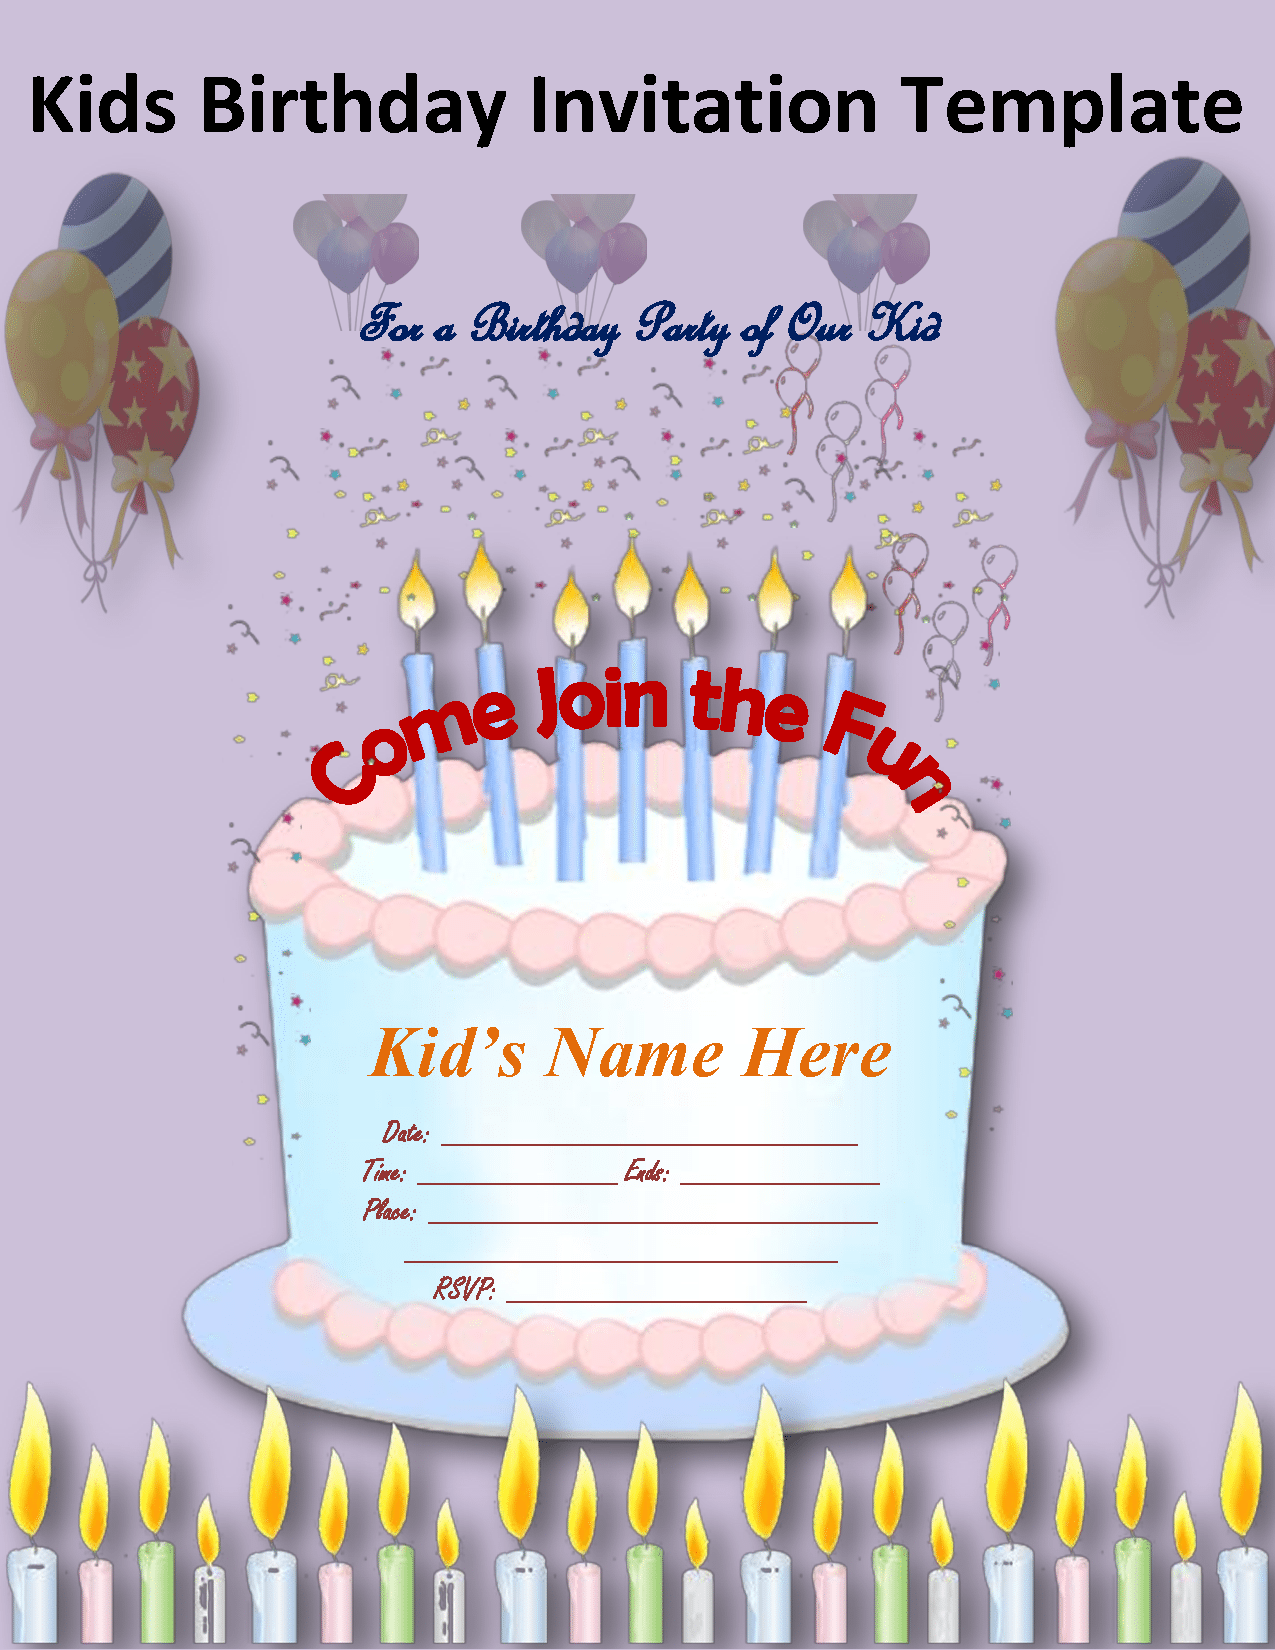 Invitation Template For Kids